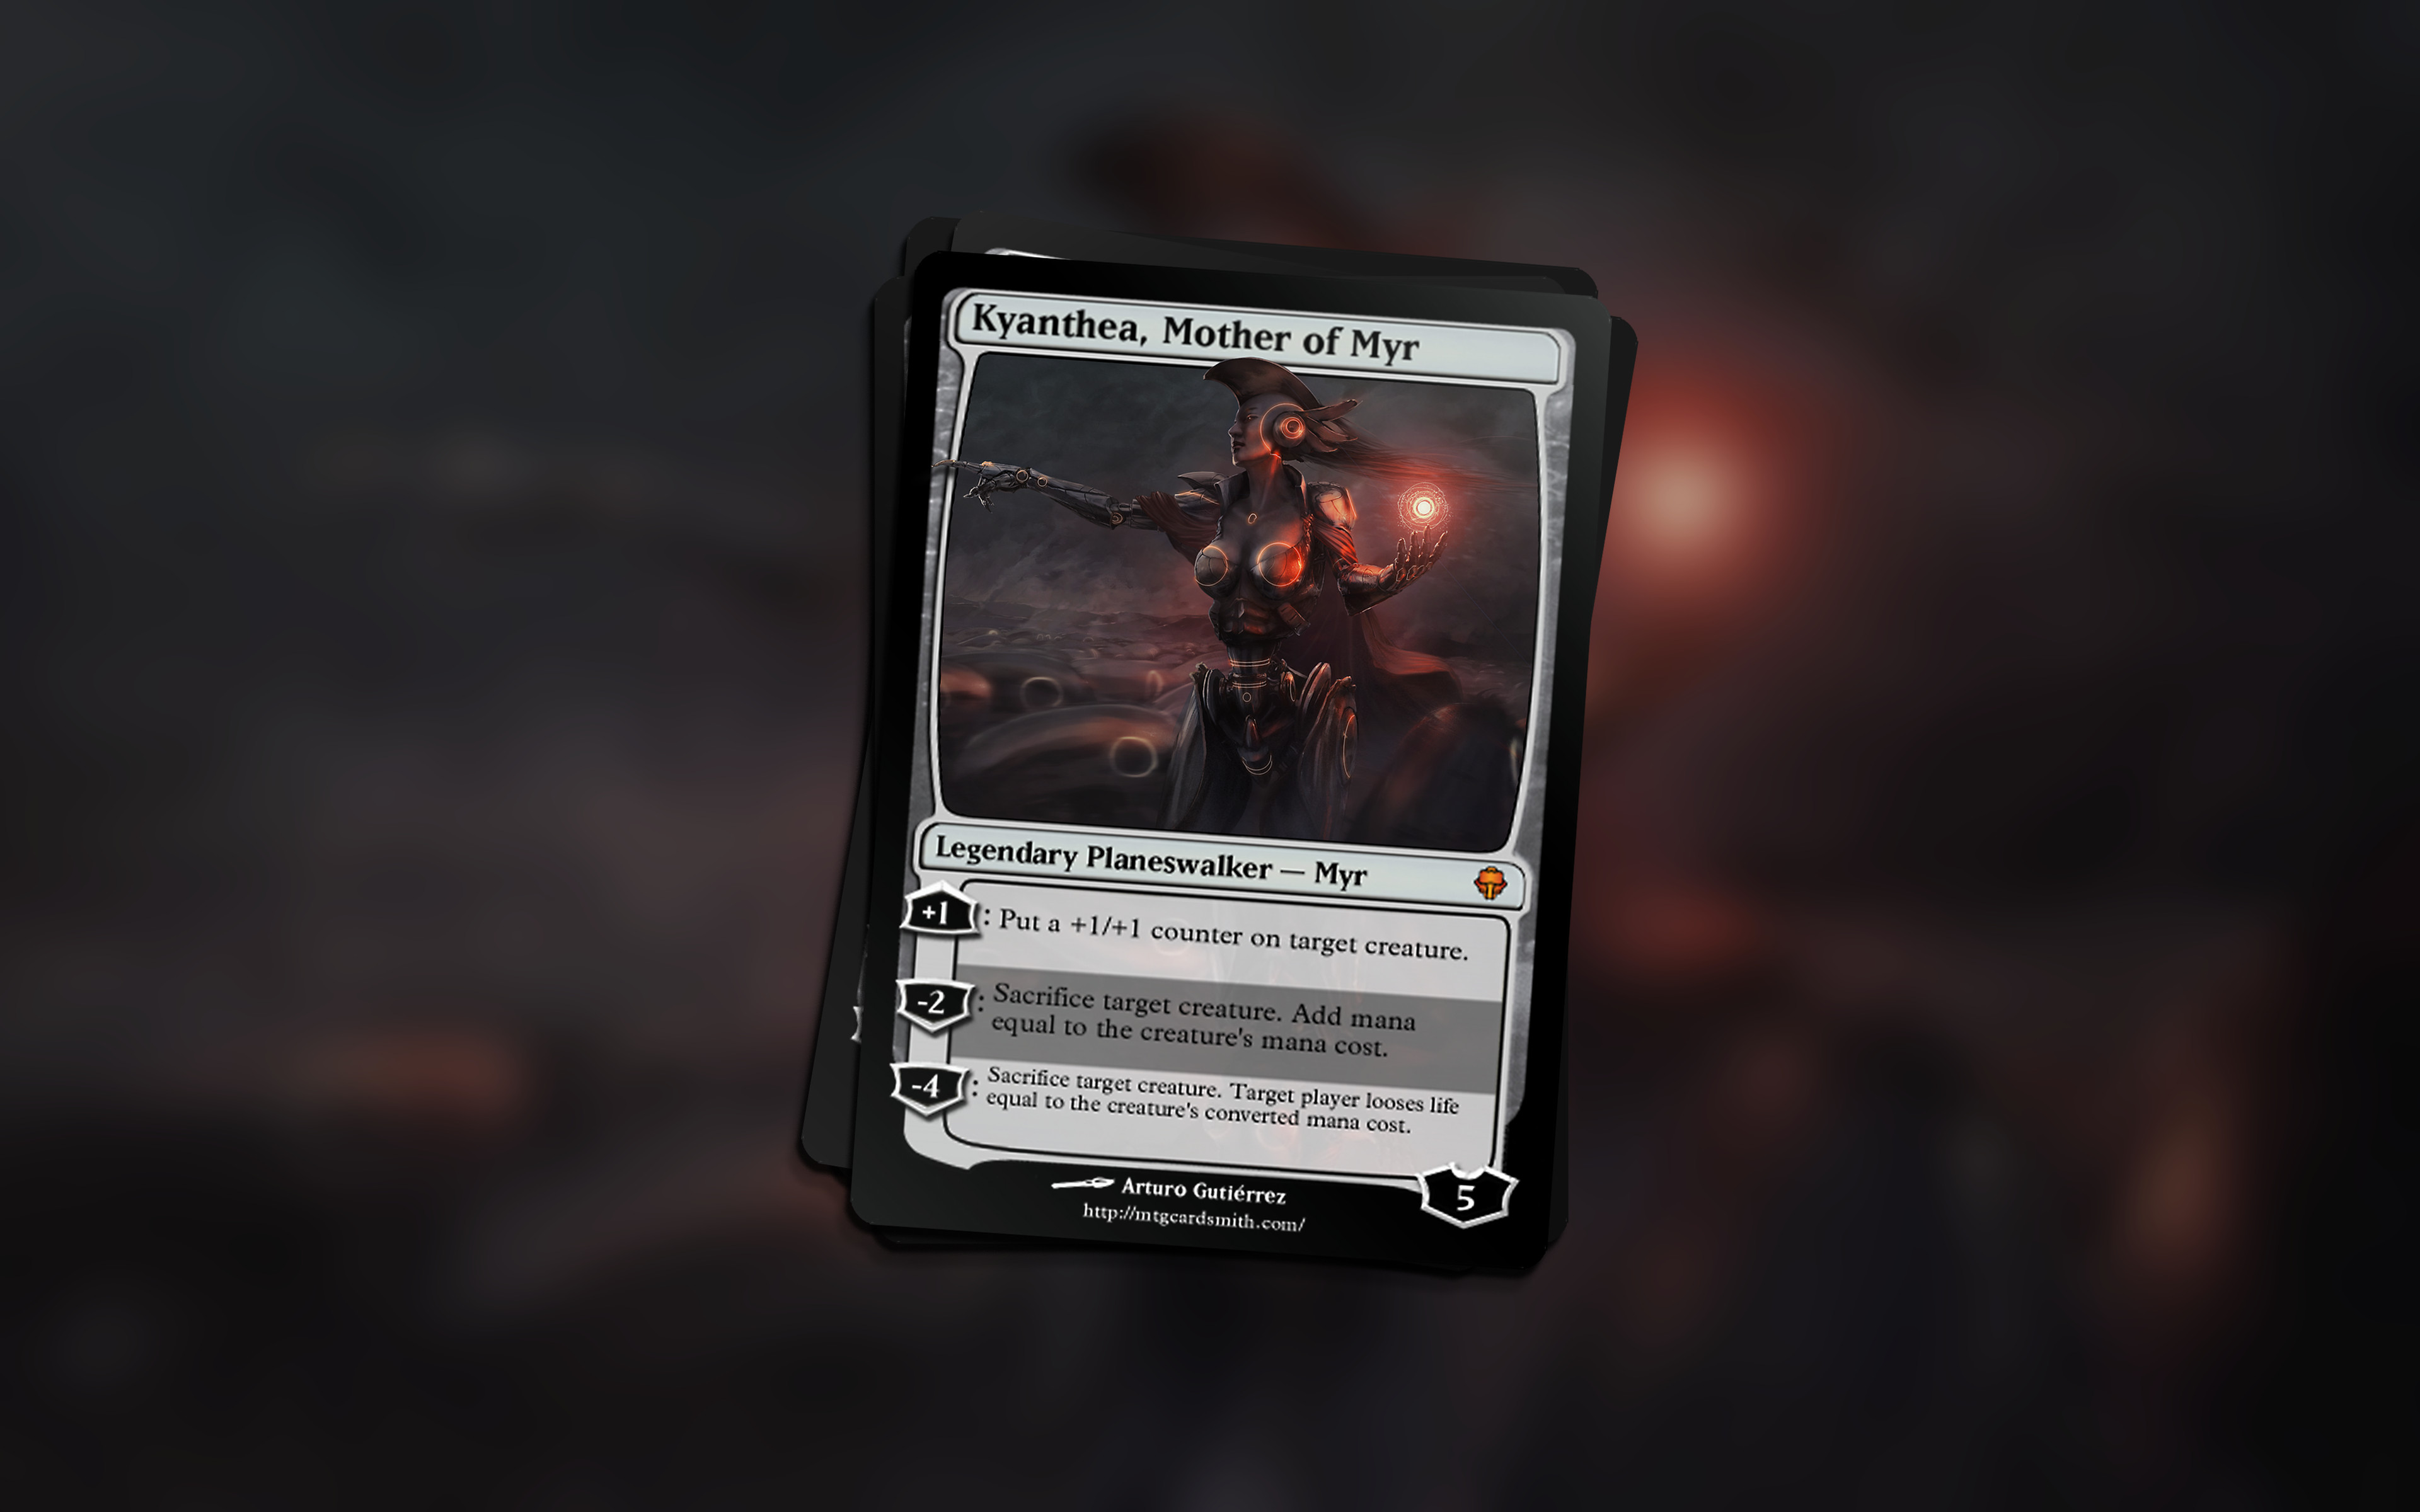 Card made with mtgcardsmith.com: Not a real MTG card.